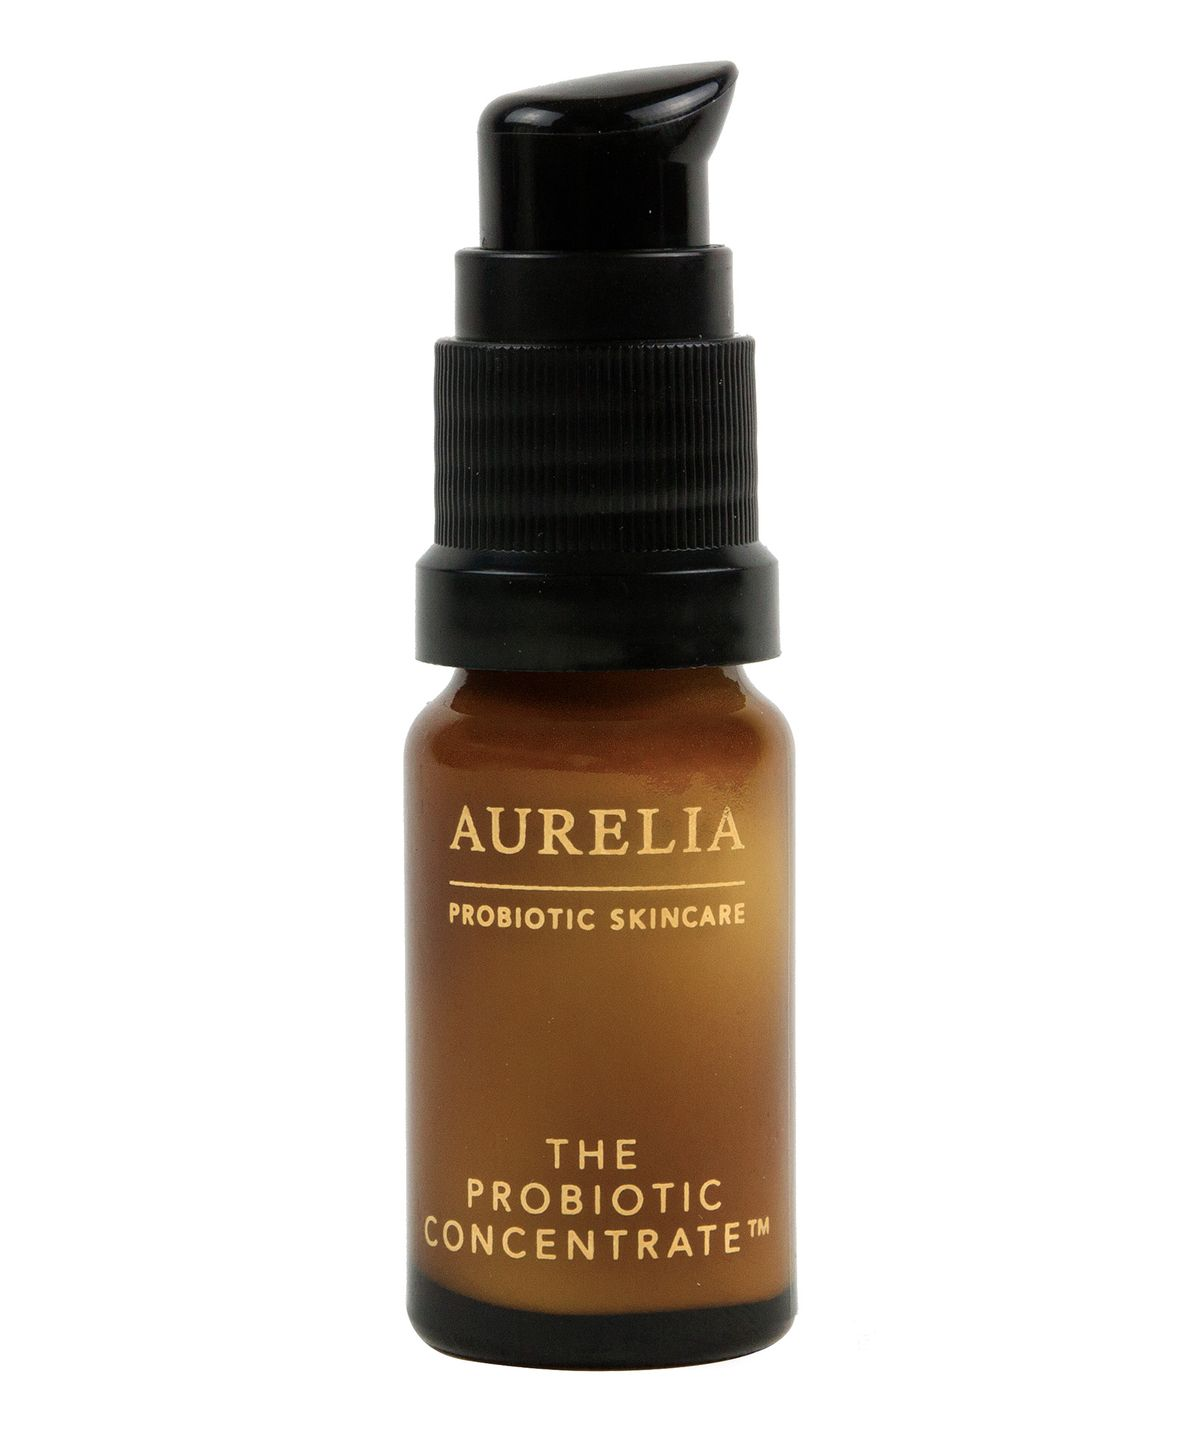 Aurelia Probiotic Skincare The Probiotic Concentrate